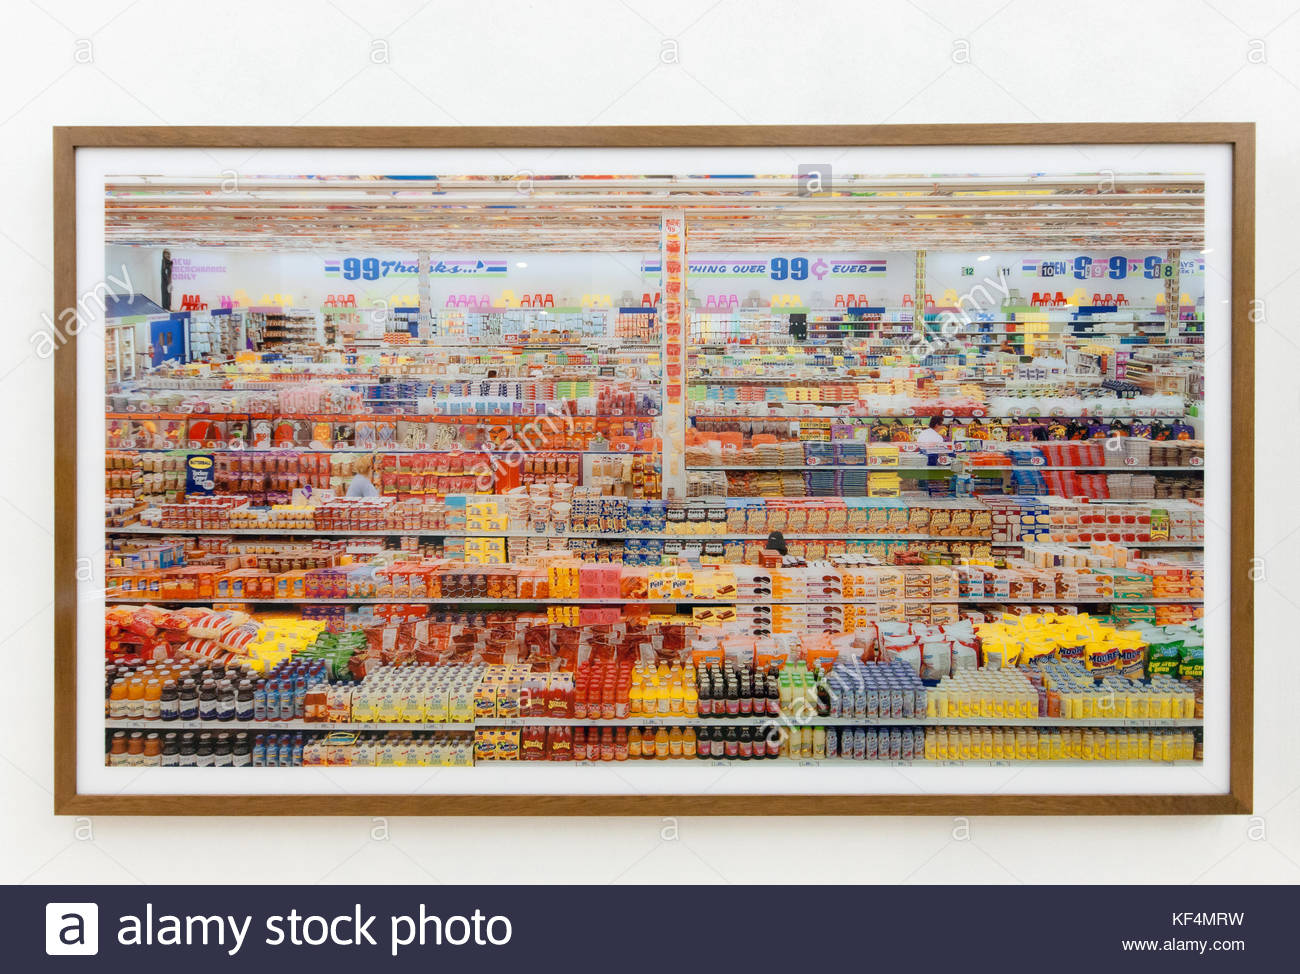 Andreas Gursky 99 Cent II Diptychon Large Format Photographs C Print Mounted To Acrylic Glass 1999 From Arts Foods Exhibition Milan 2015